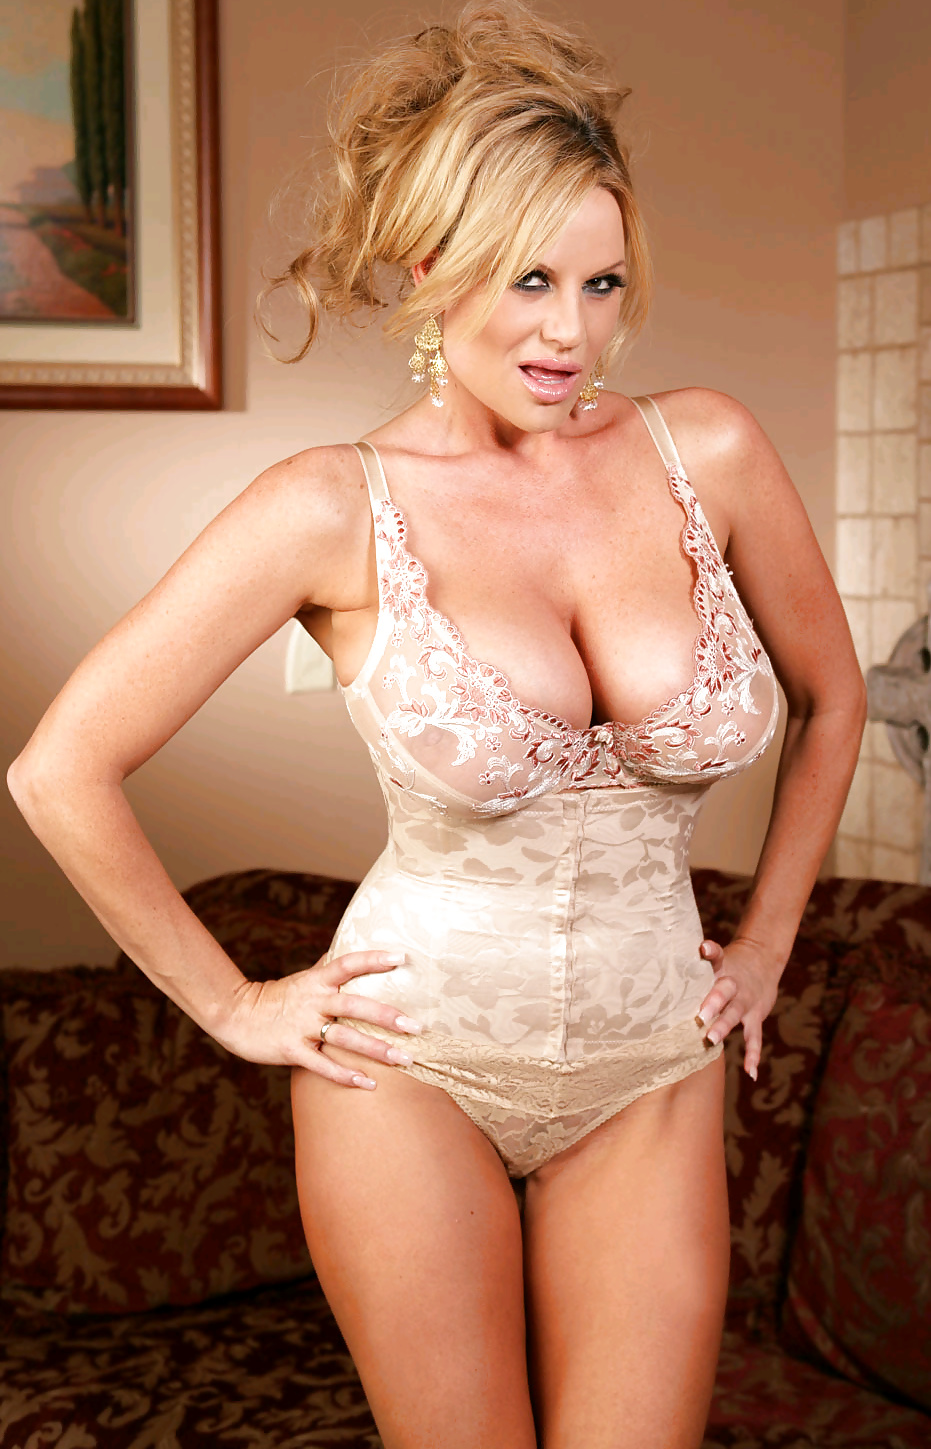 Free pics of hot milf with big tits and smooth